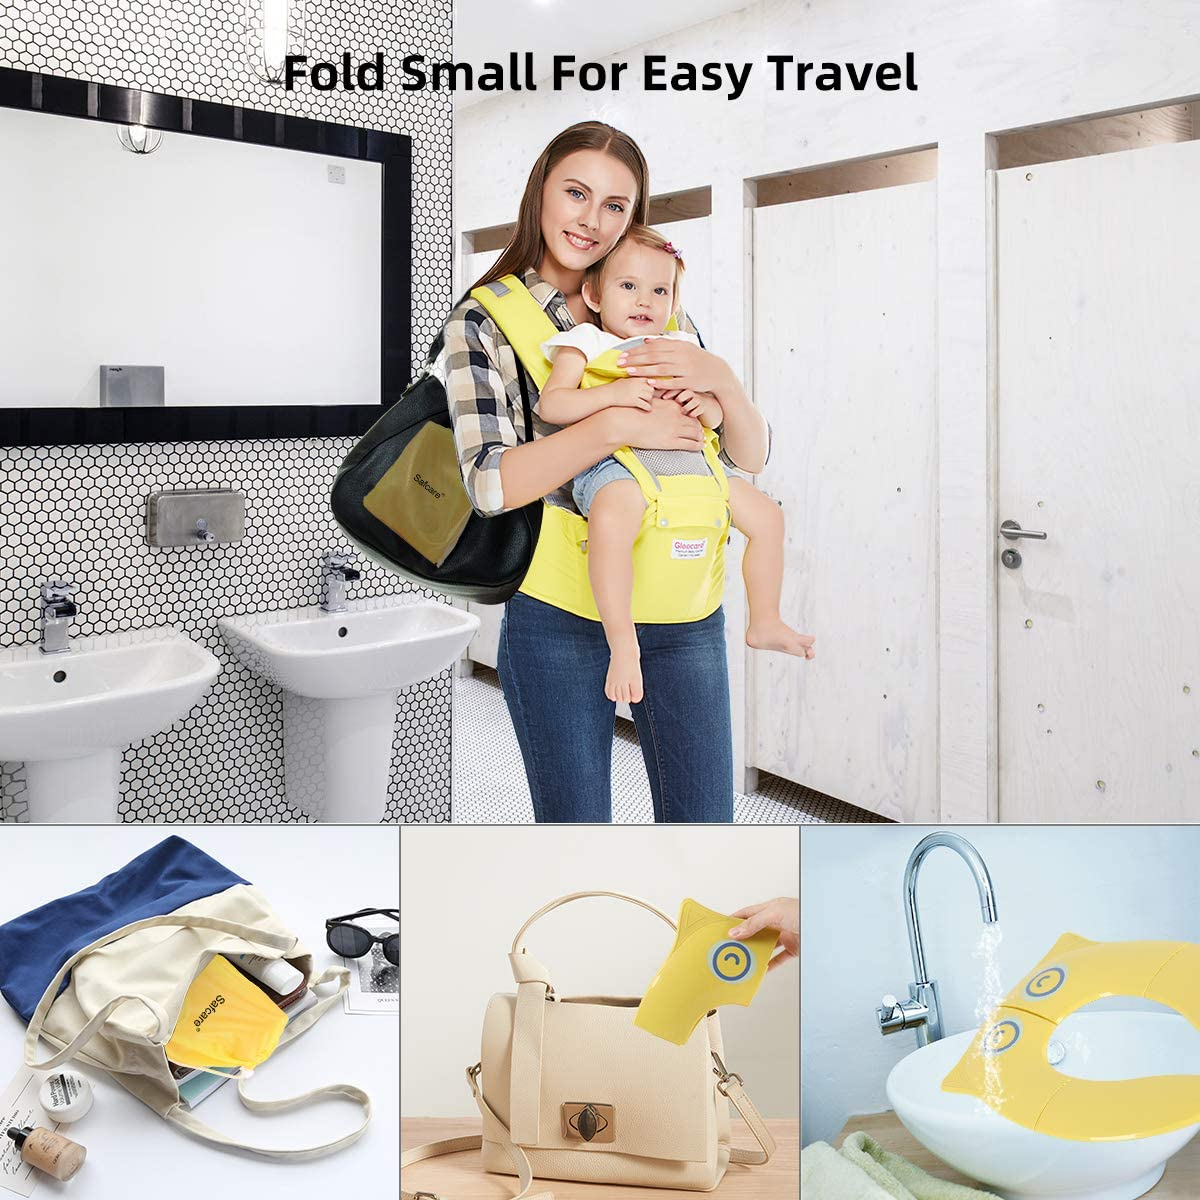 Travel Portable Reusable Toddlers Toilet Seat Covers Liners Fits Round /& Oval Toilets with Carry Bag Safcare Folding Large Non-Slip Potty Training Seat for Boys and Girls